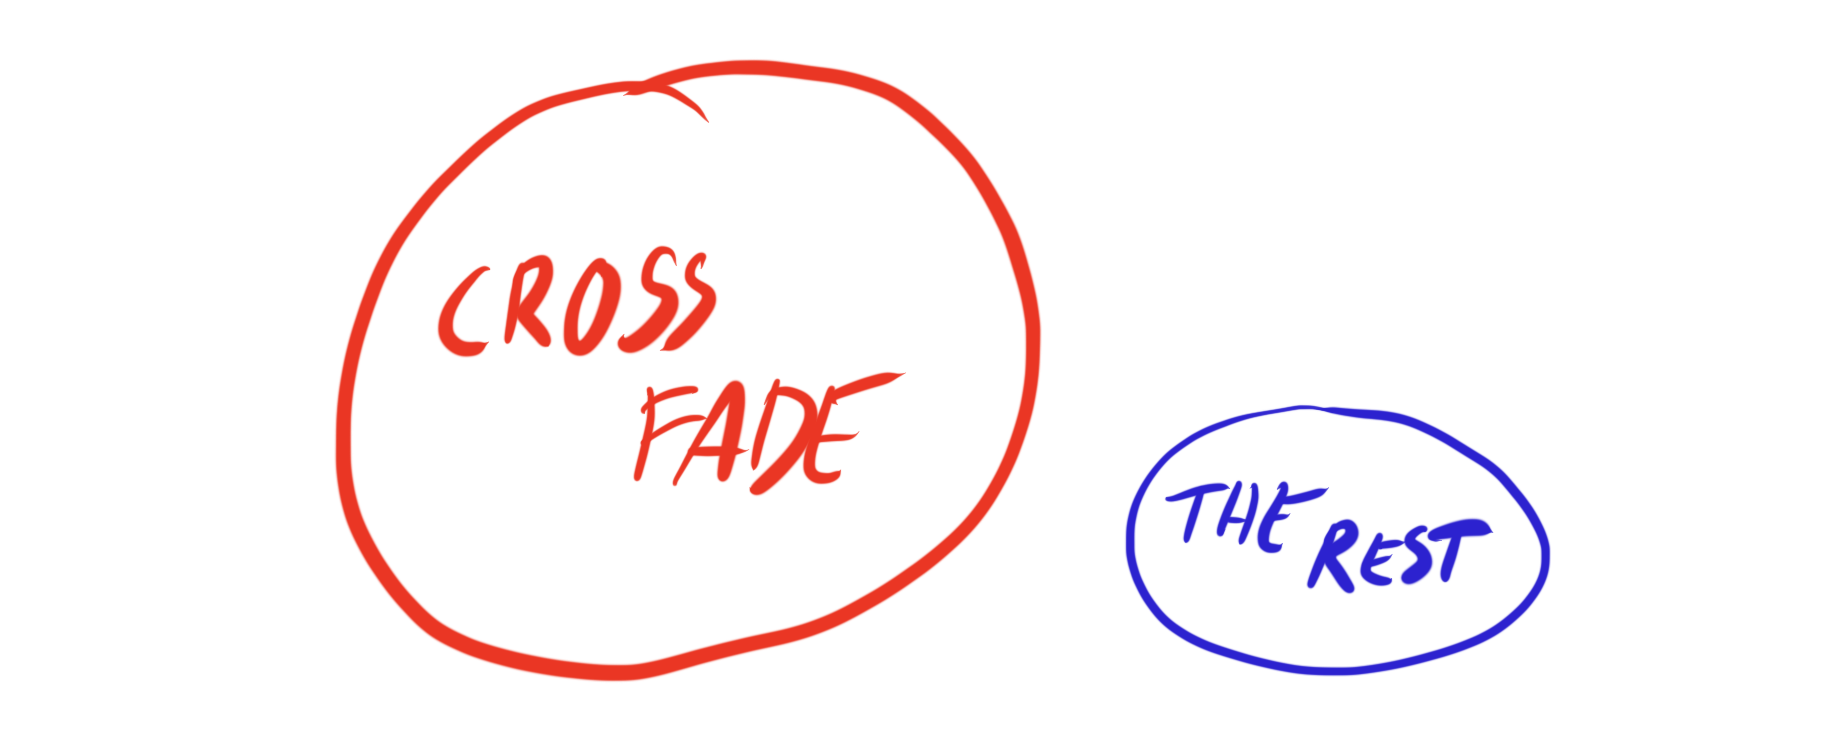 Cross-fade and the rest illustration